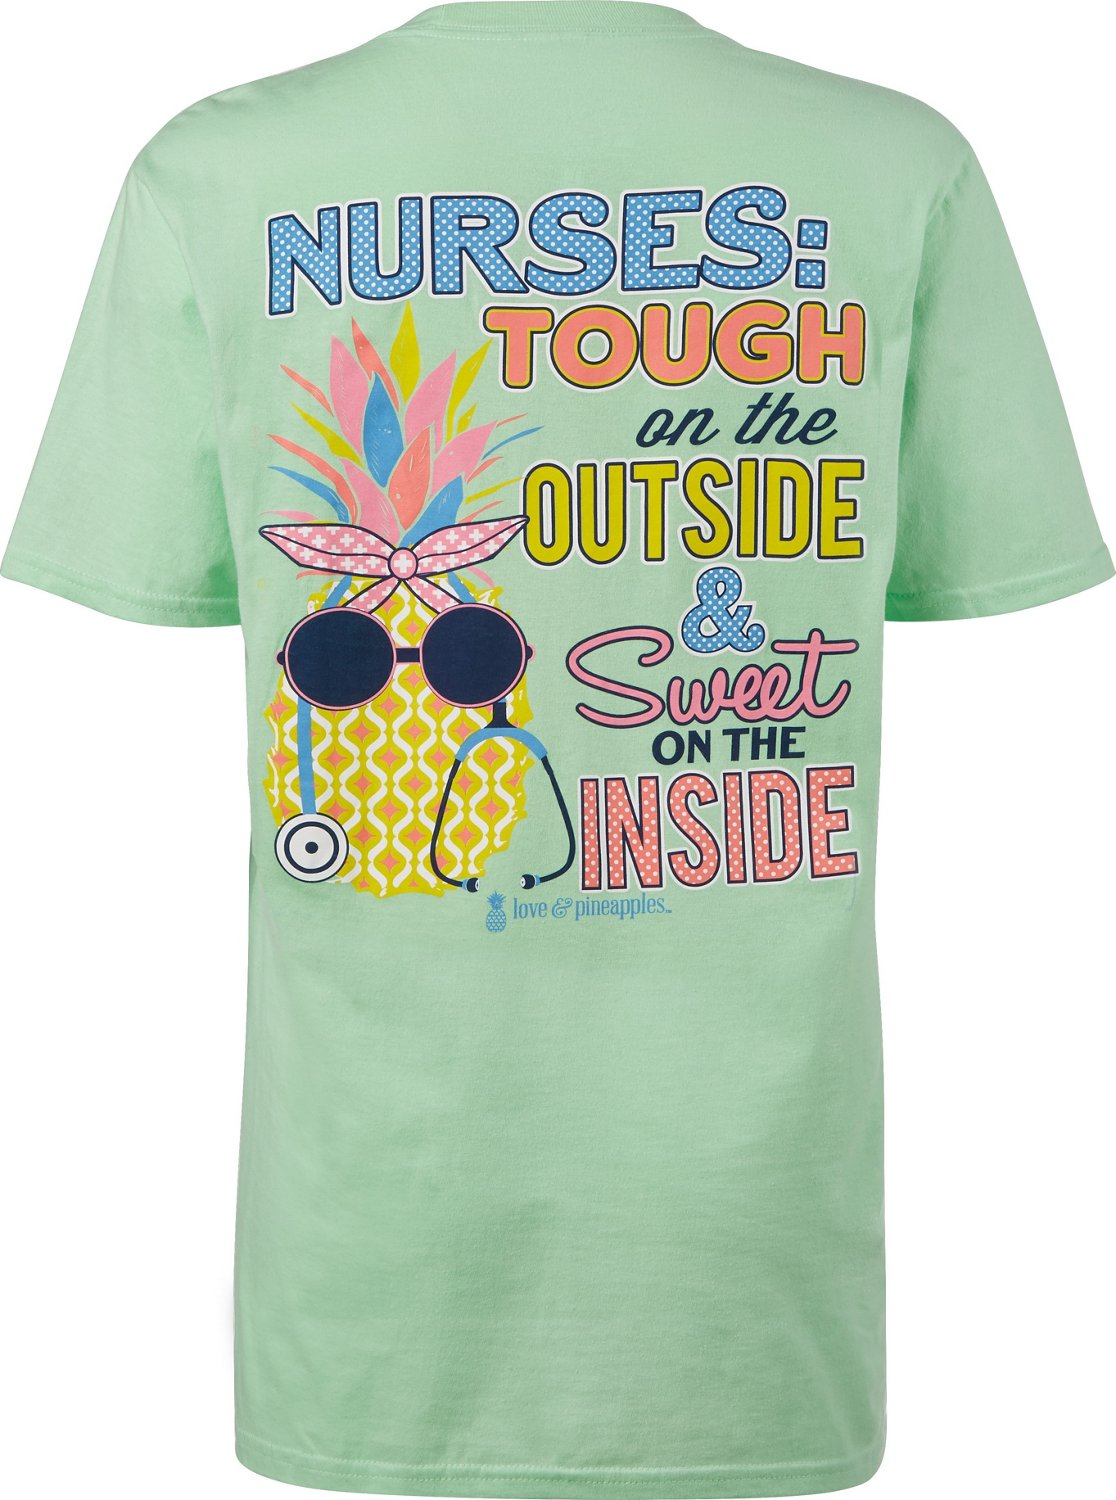 bbb64e9c4cf6d Display product reviews for Love & Pineapples Women's Nurses Tough & Sweet  Short Sleeve ...